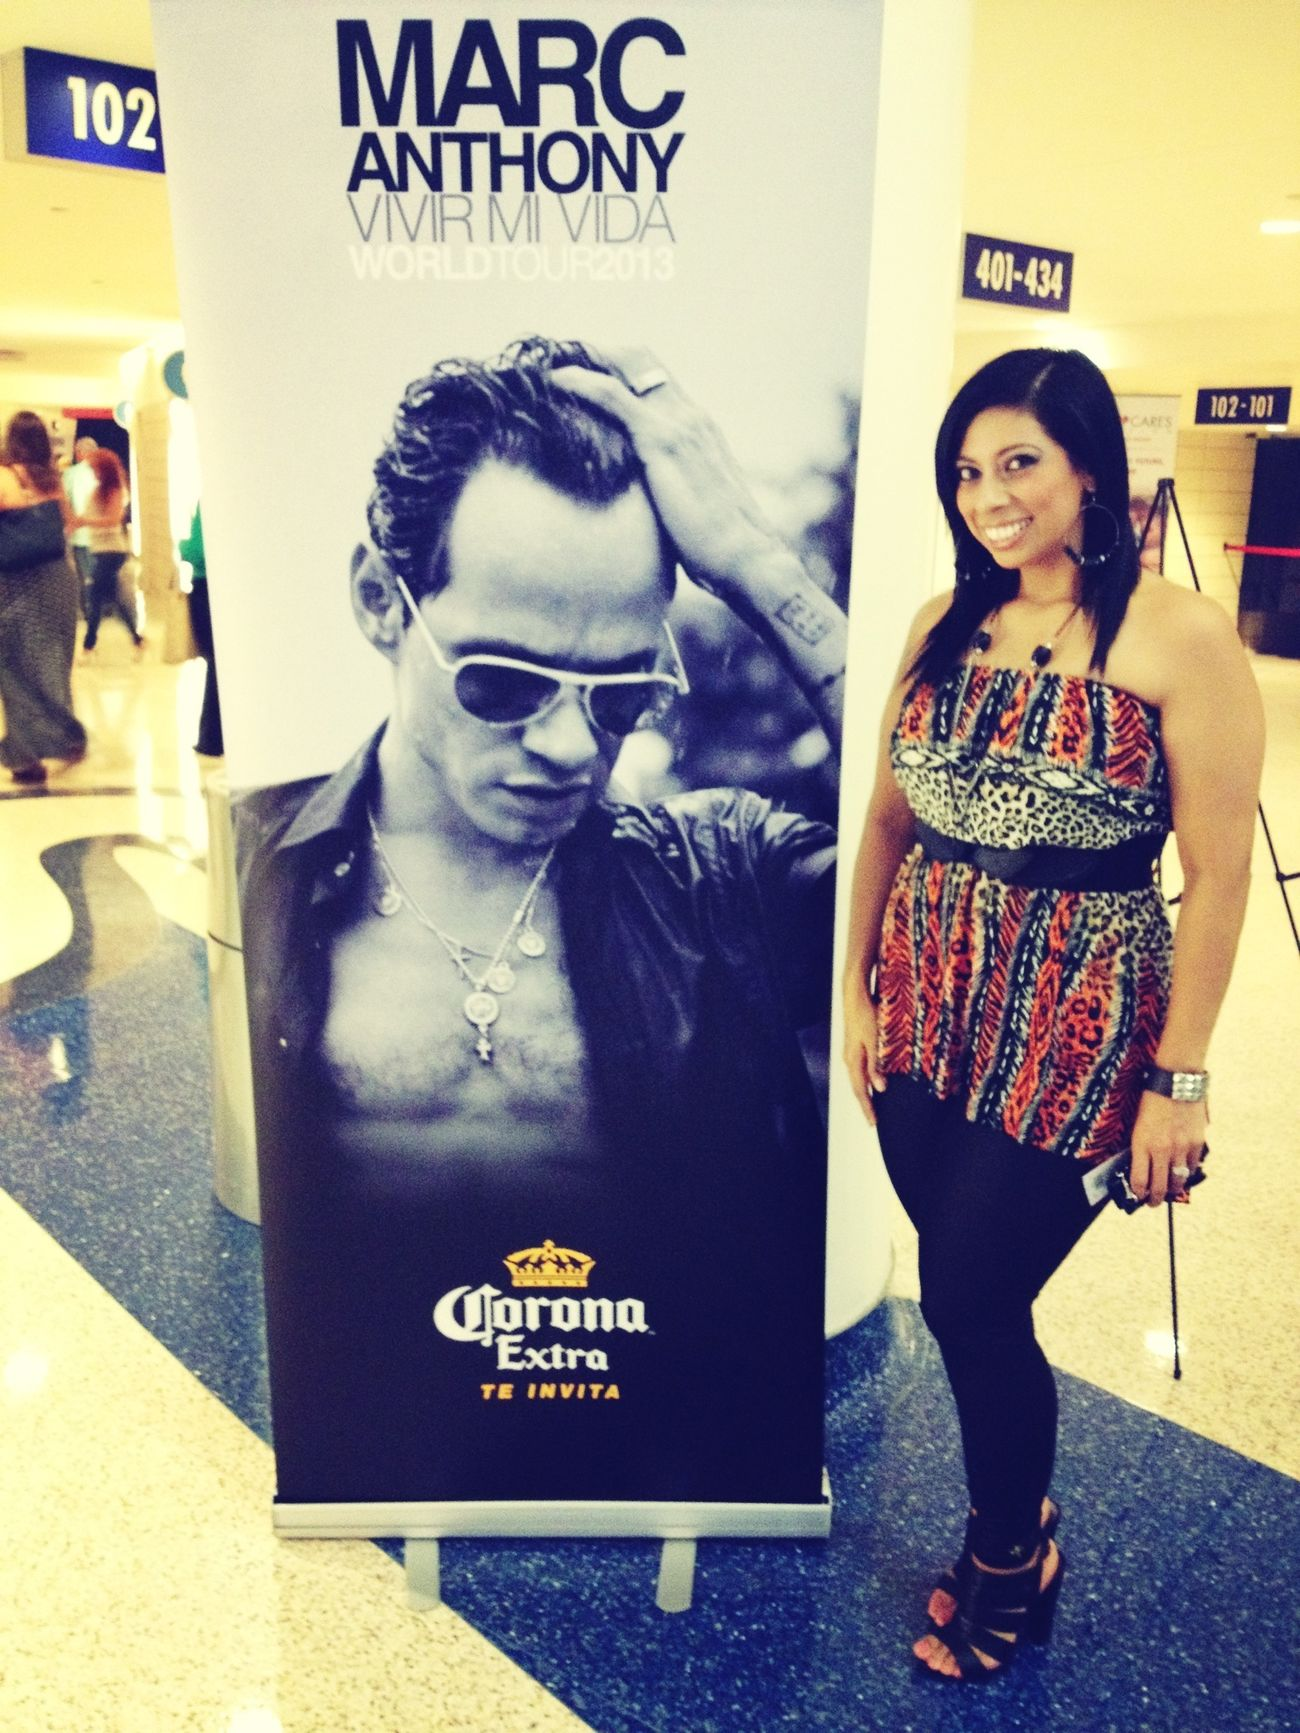 Marc Anthony Concert Fun